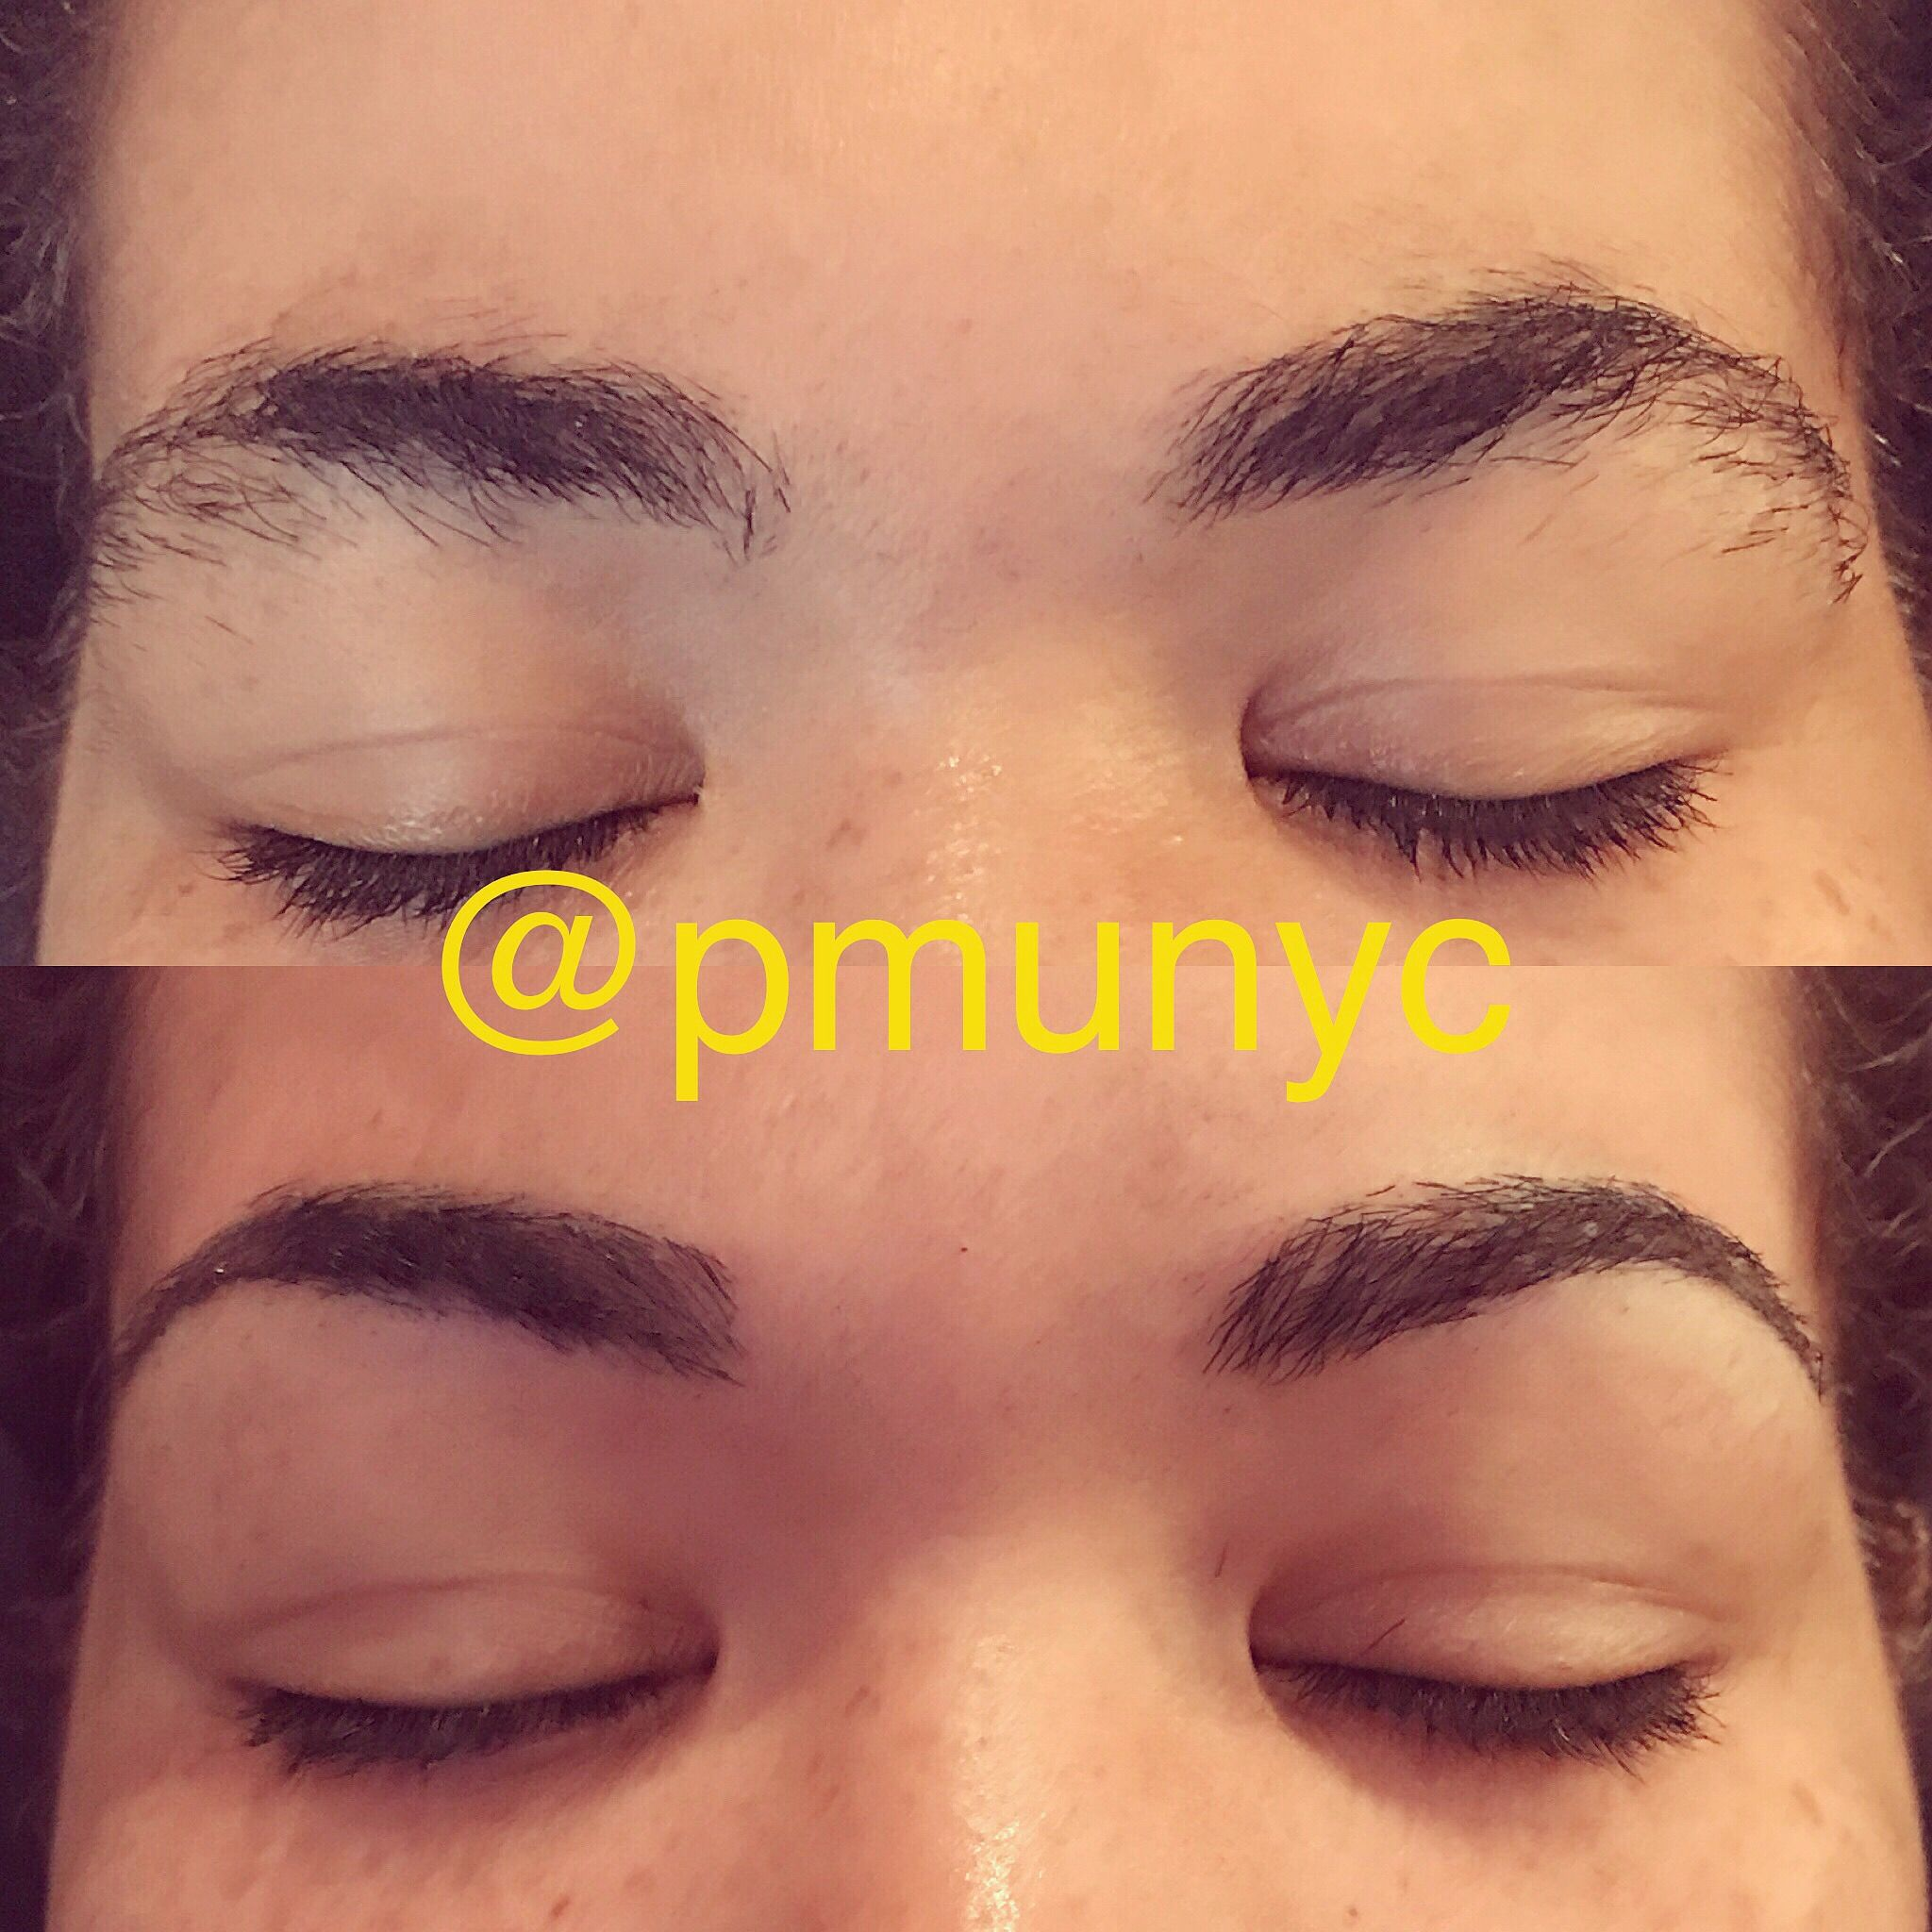 Pin by Permanent Makeup NYC on PMU.NYC Eyebrow shaping